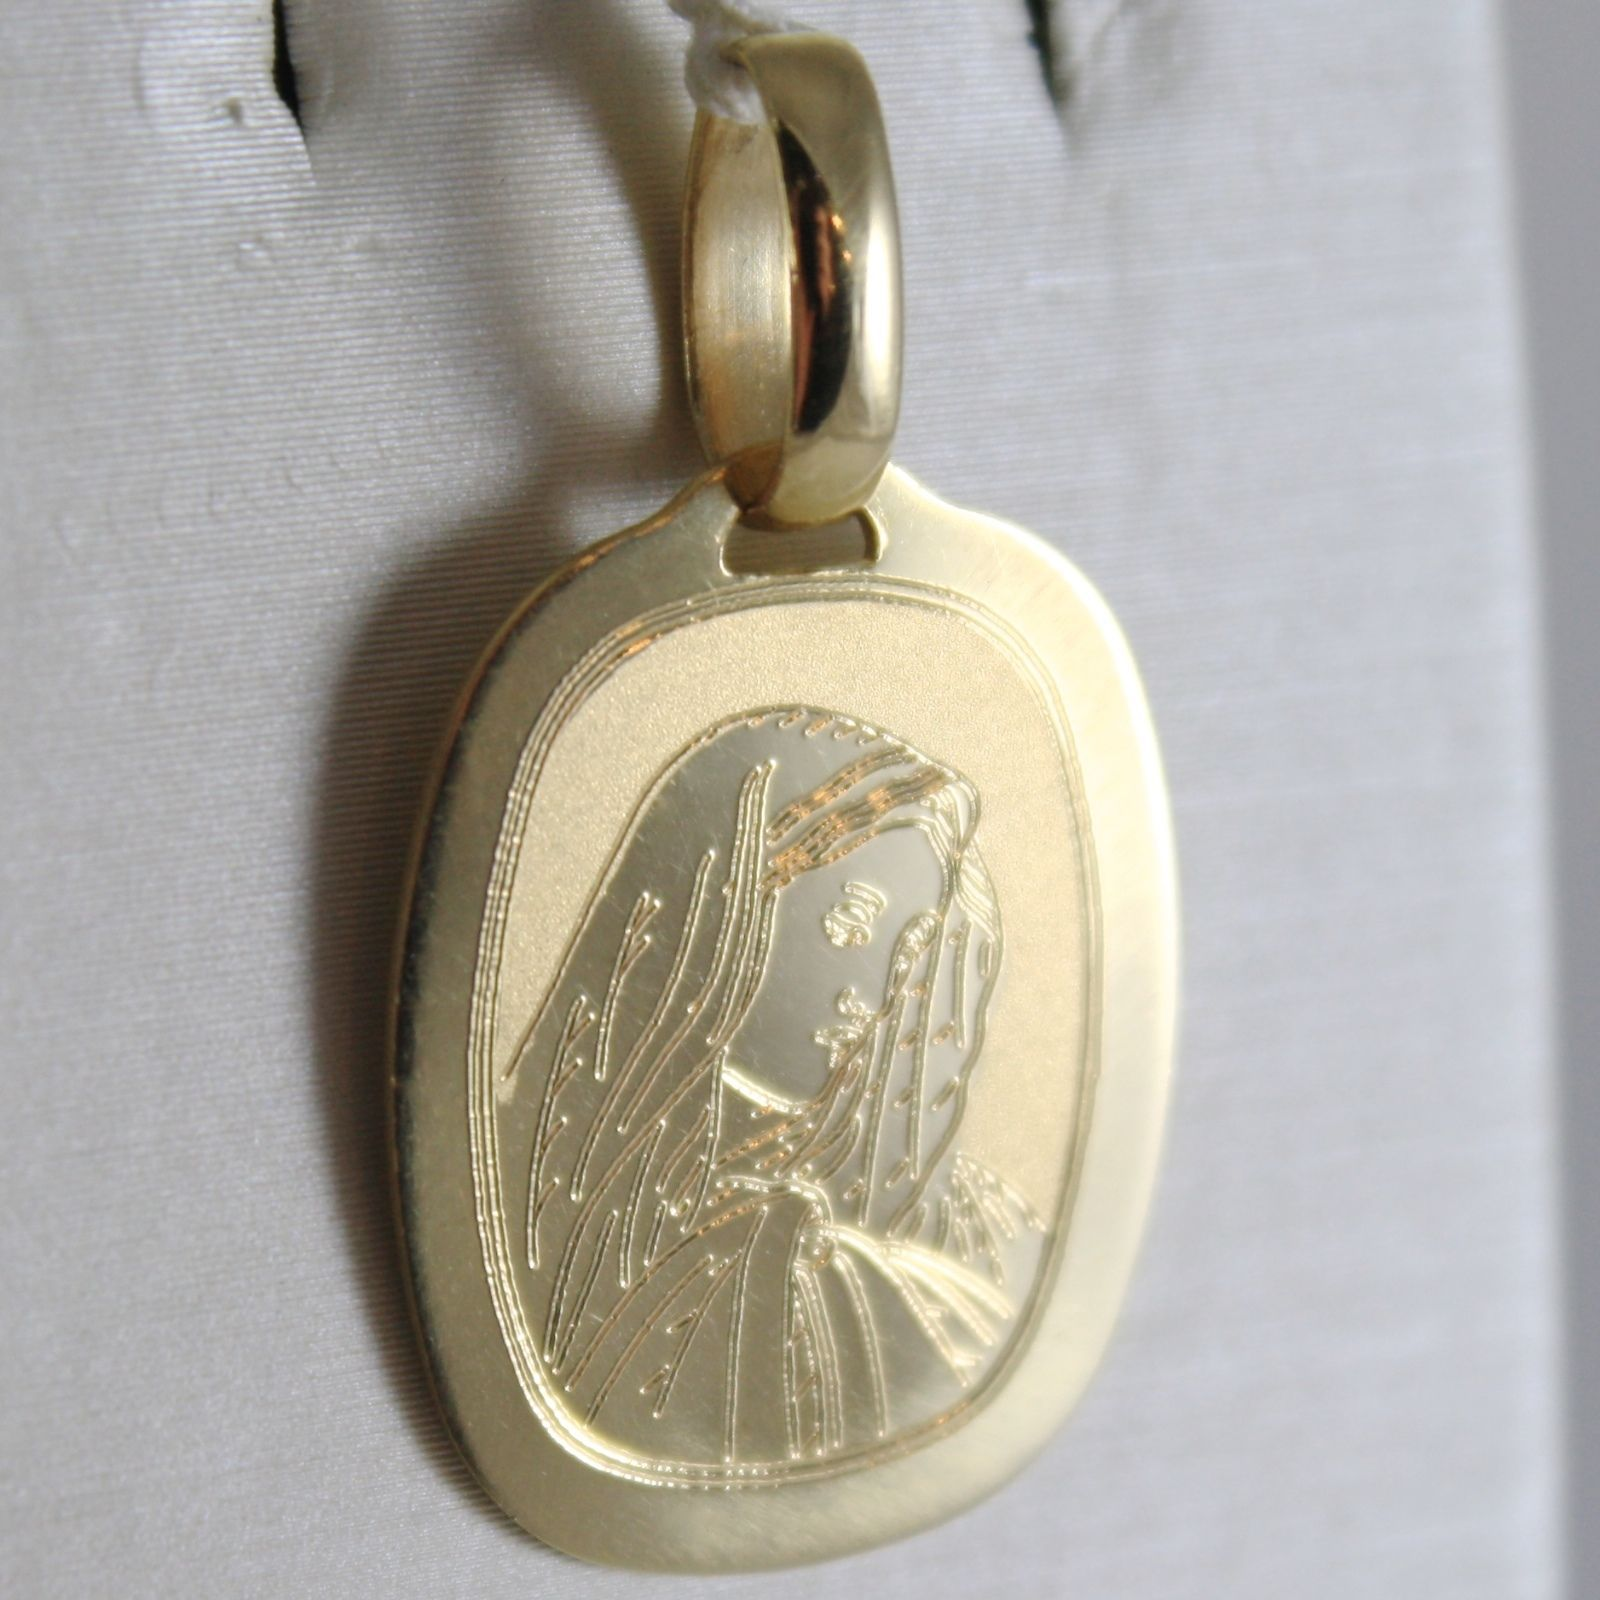 PENDANT MEDAL YELLOW GOLD 750 18K, MADONNA, MARY JANE, ENGRAVABLE, MADE IN ITALY